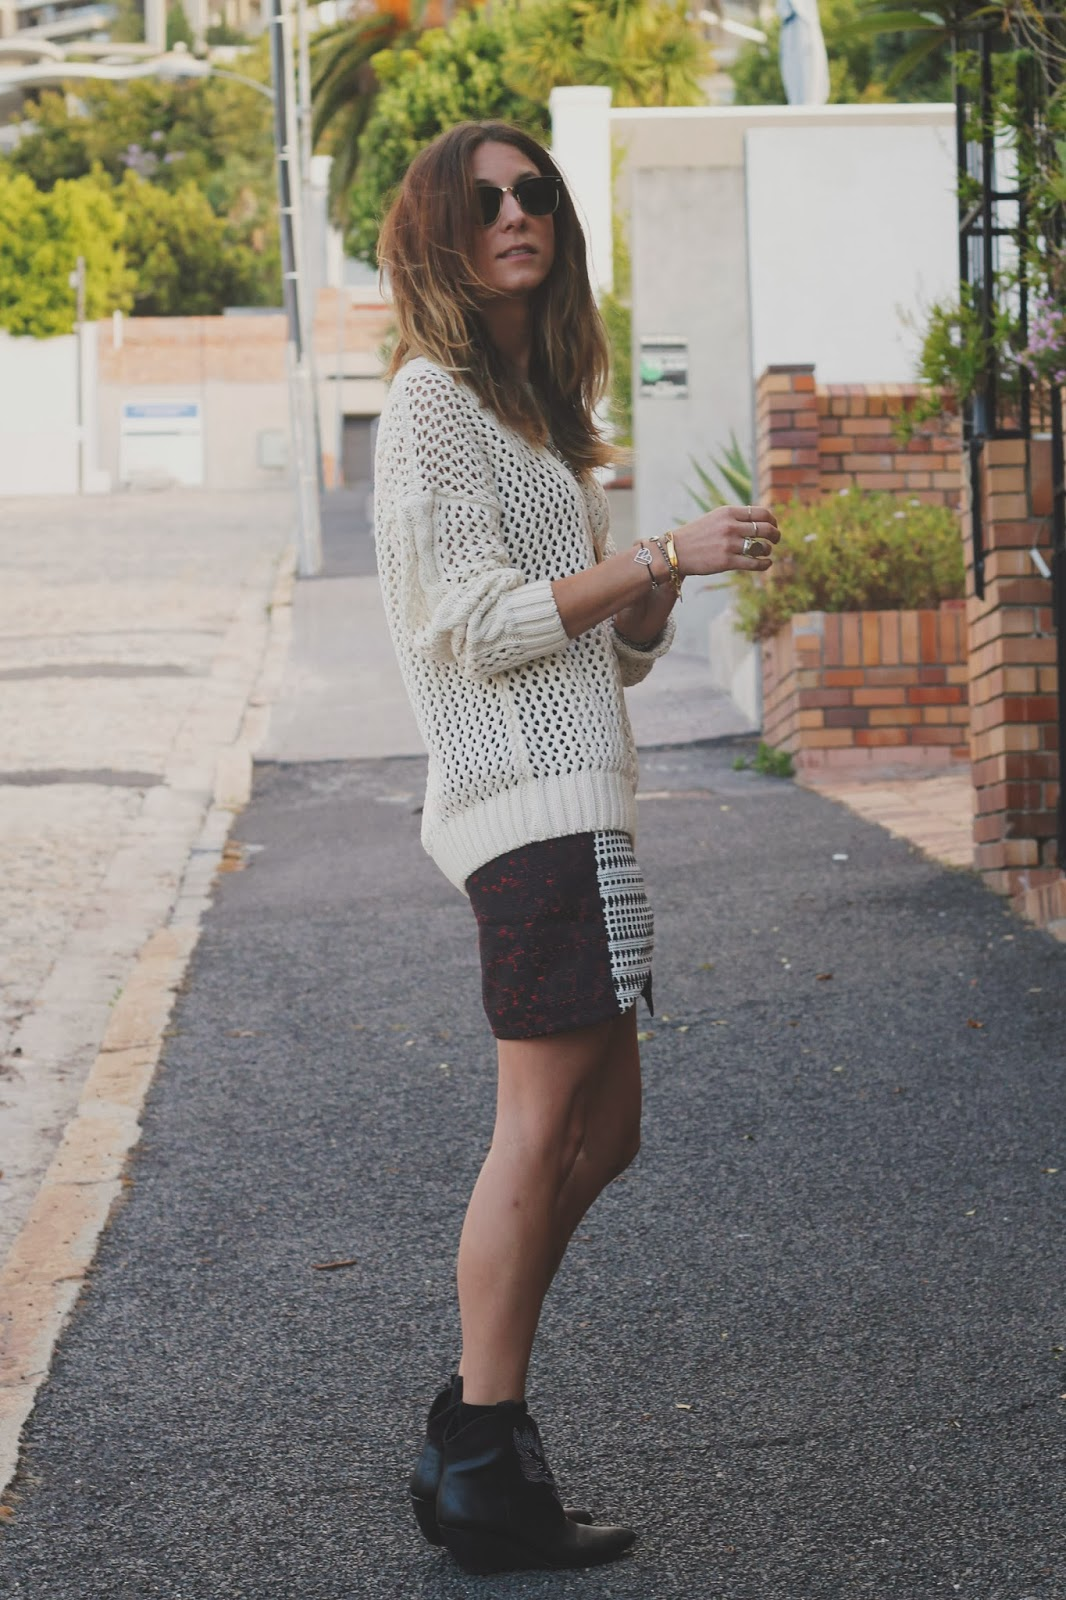 topshop, wrap skirt, tobruckave, fall, skirt, sweater